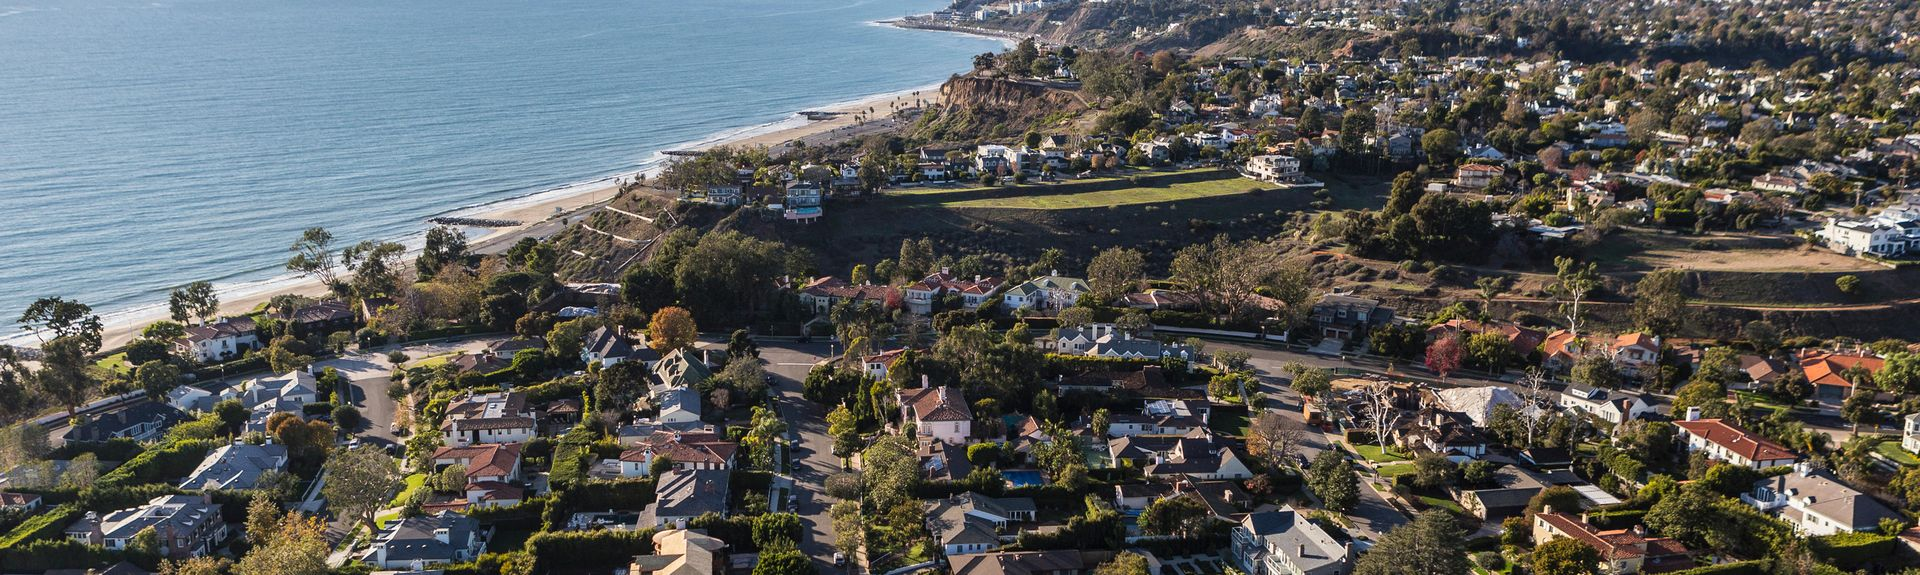 Pacific Palisades, California, United States of America